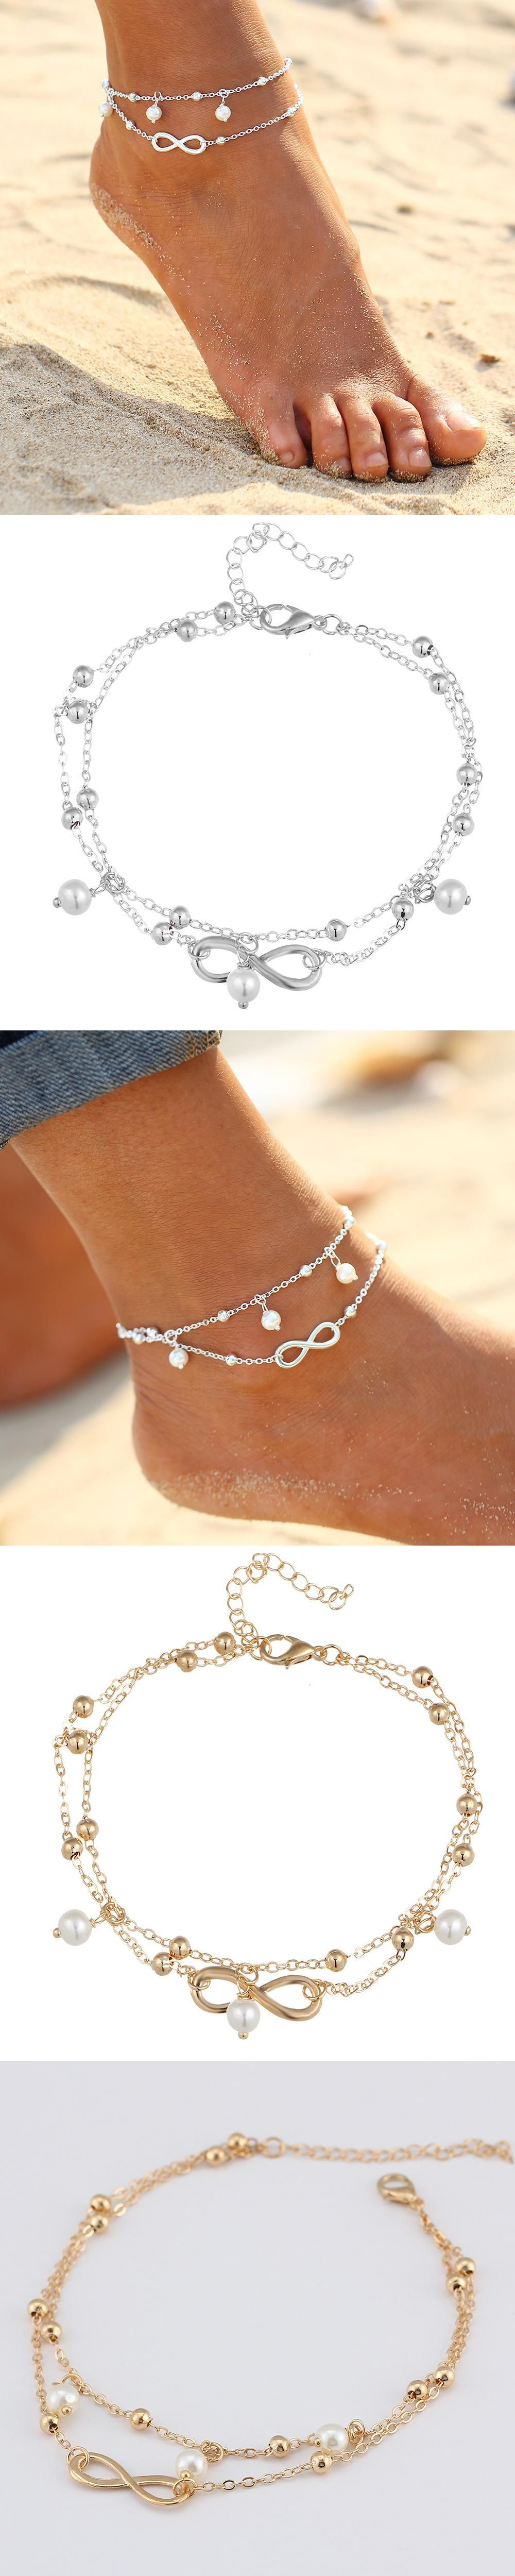 for p summer womens anklet snail beaded beach jewelry beautiful dollar sand bracelet woman fashion women ankle sea handmade bracelets